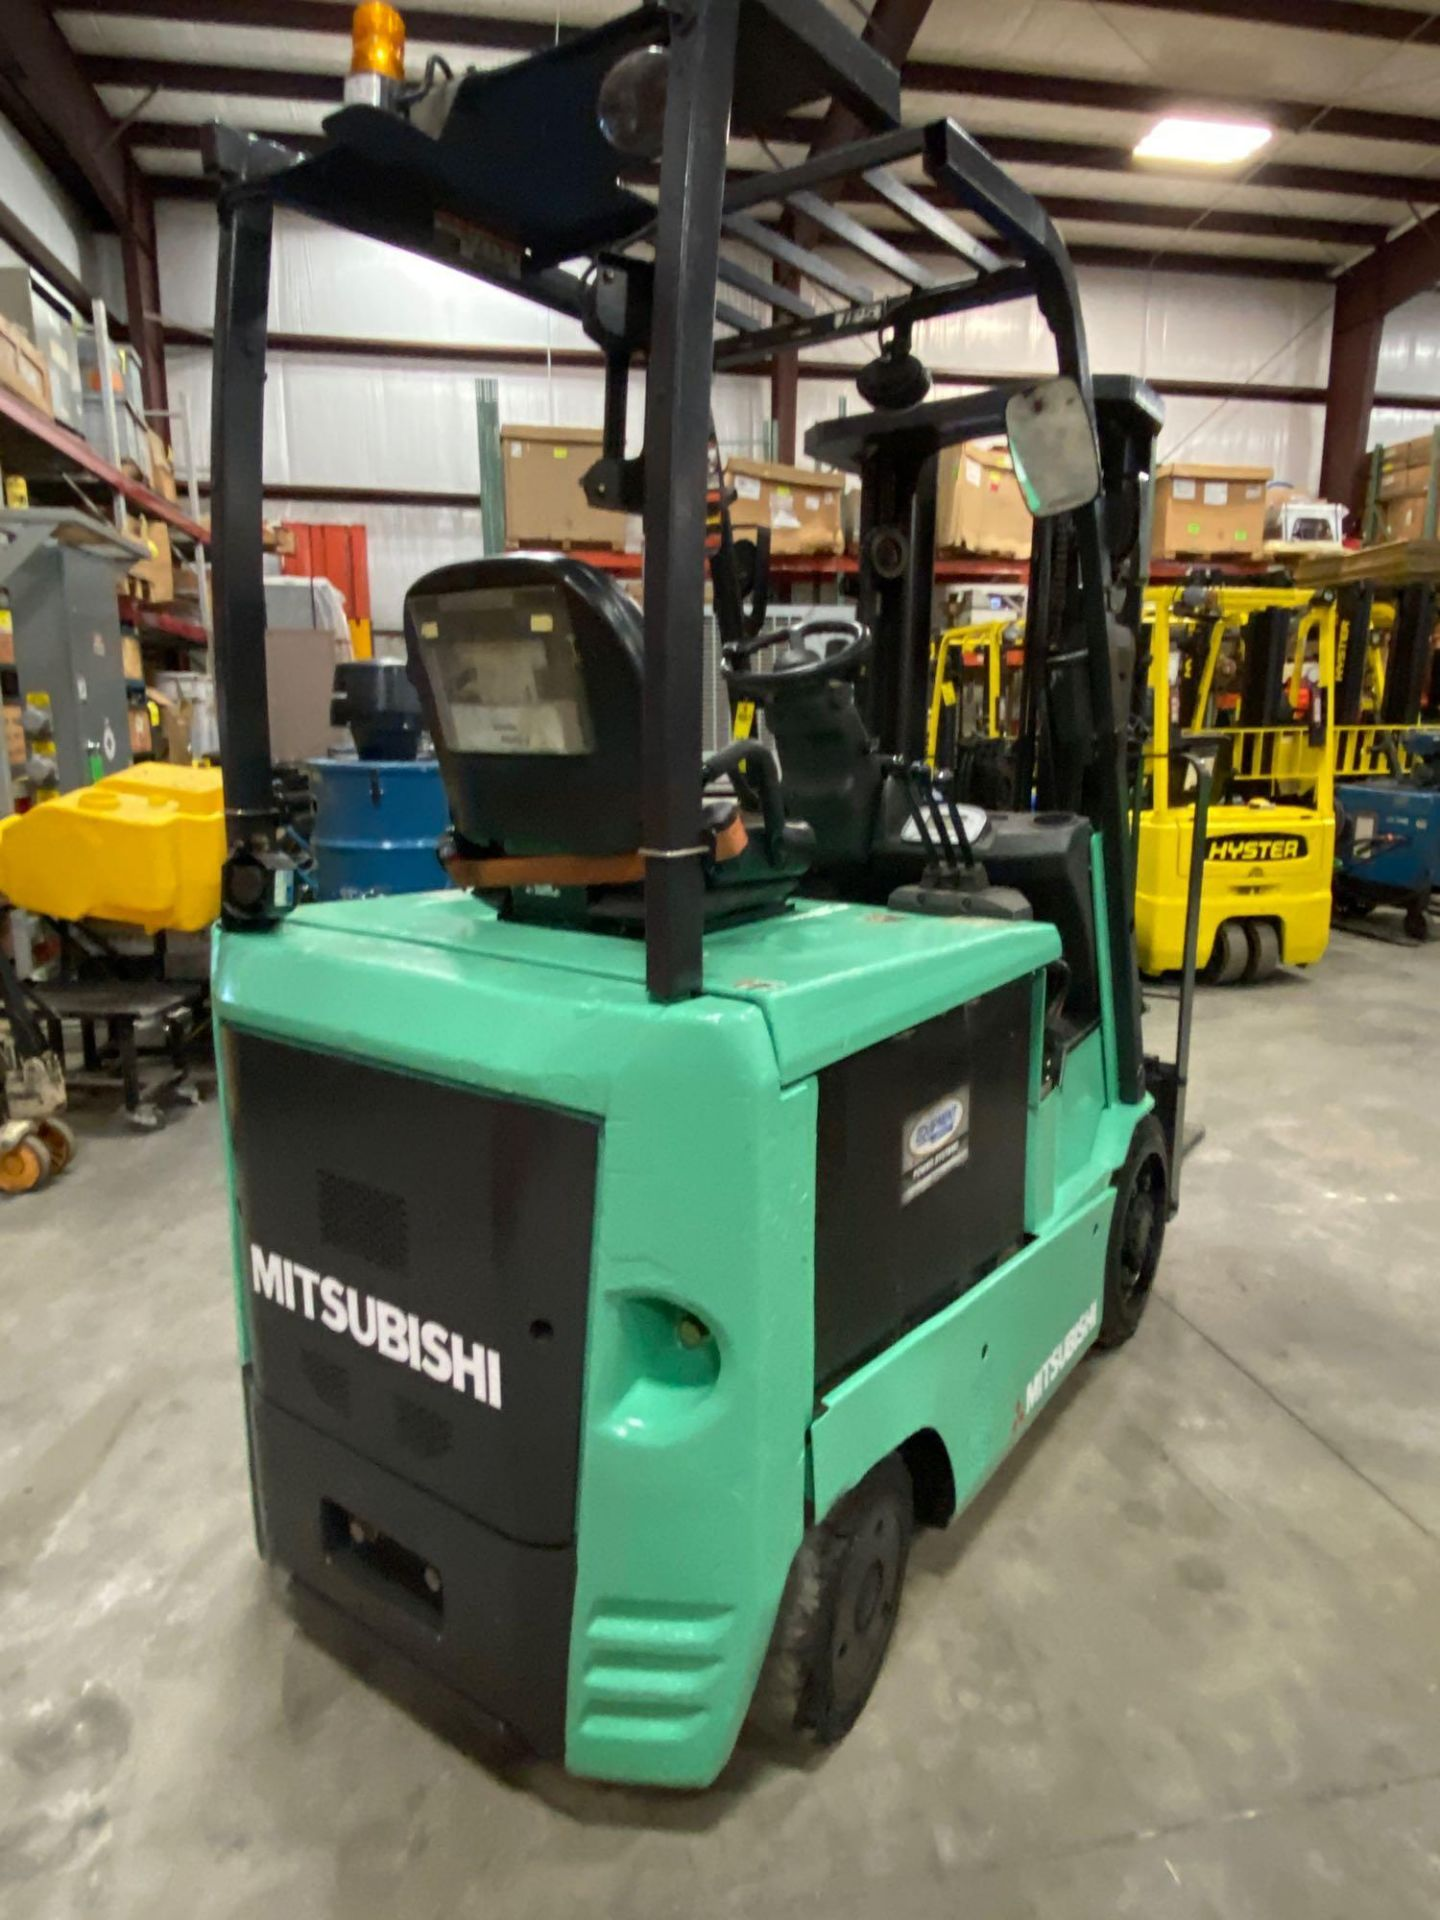 "2015 MITSUBISHI FBC25N2 36V FORKLIFT, APPROX 4500LB CAPACITY, TILT, SIDESHIFT, LIFT 188"" MAX HEIGHT, - Image 5 of 20"